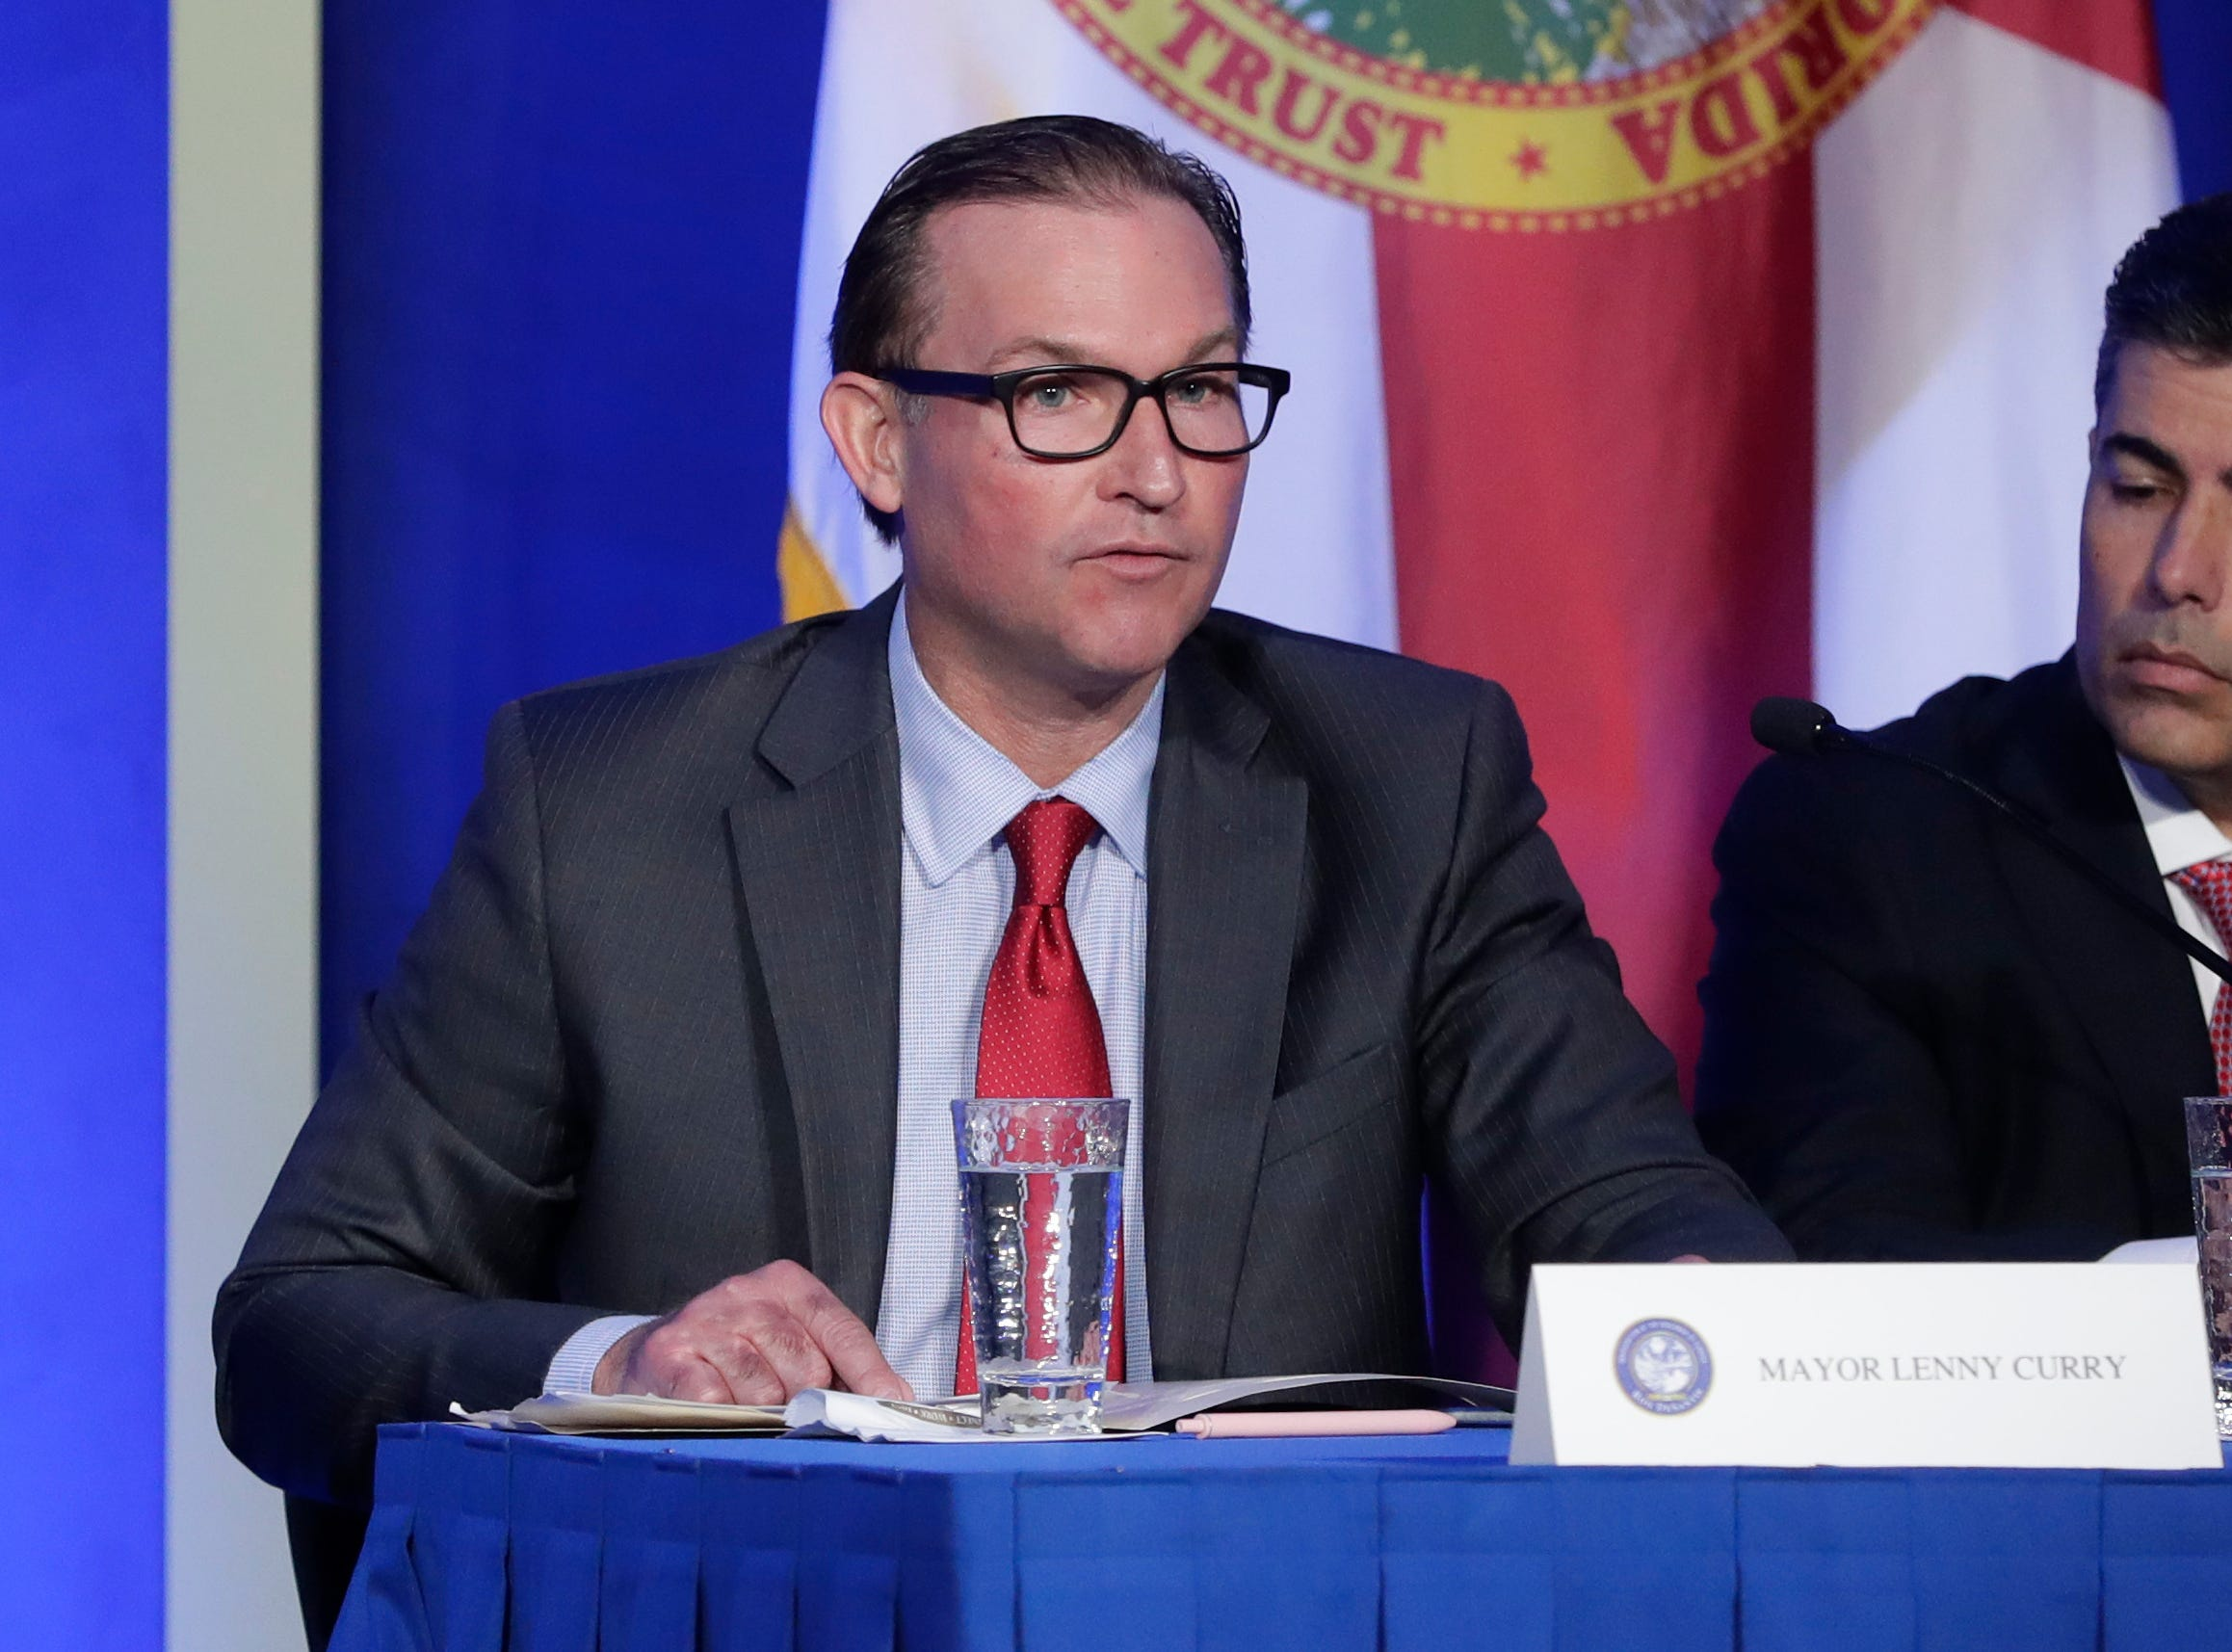 Mayor of Jacksonville Lenny Curry speaks during the Bold Vision for a Bright Future: Thought Leaders Luncheon in the University Center Club at Florida State University Monday, Jan. 7, 2019.